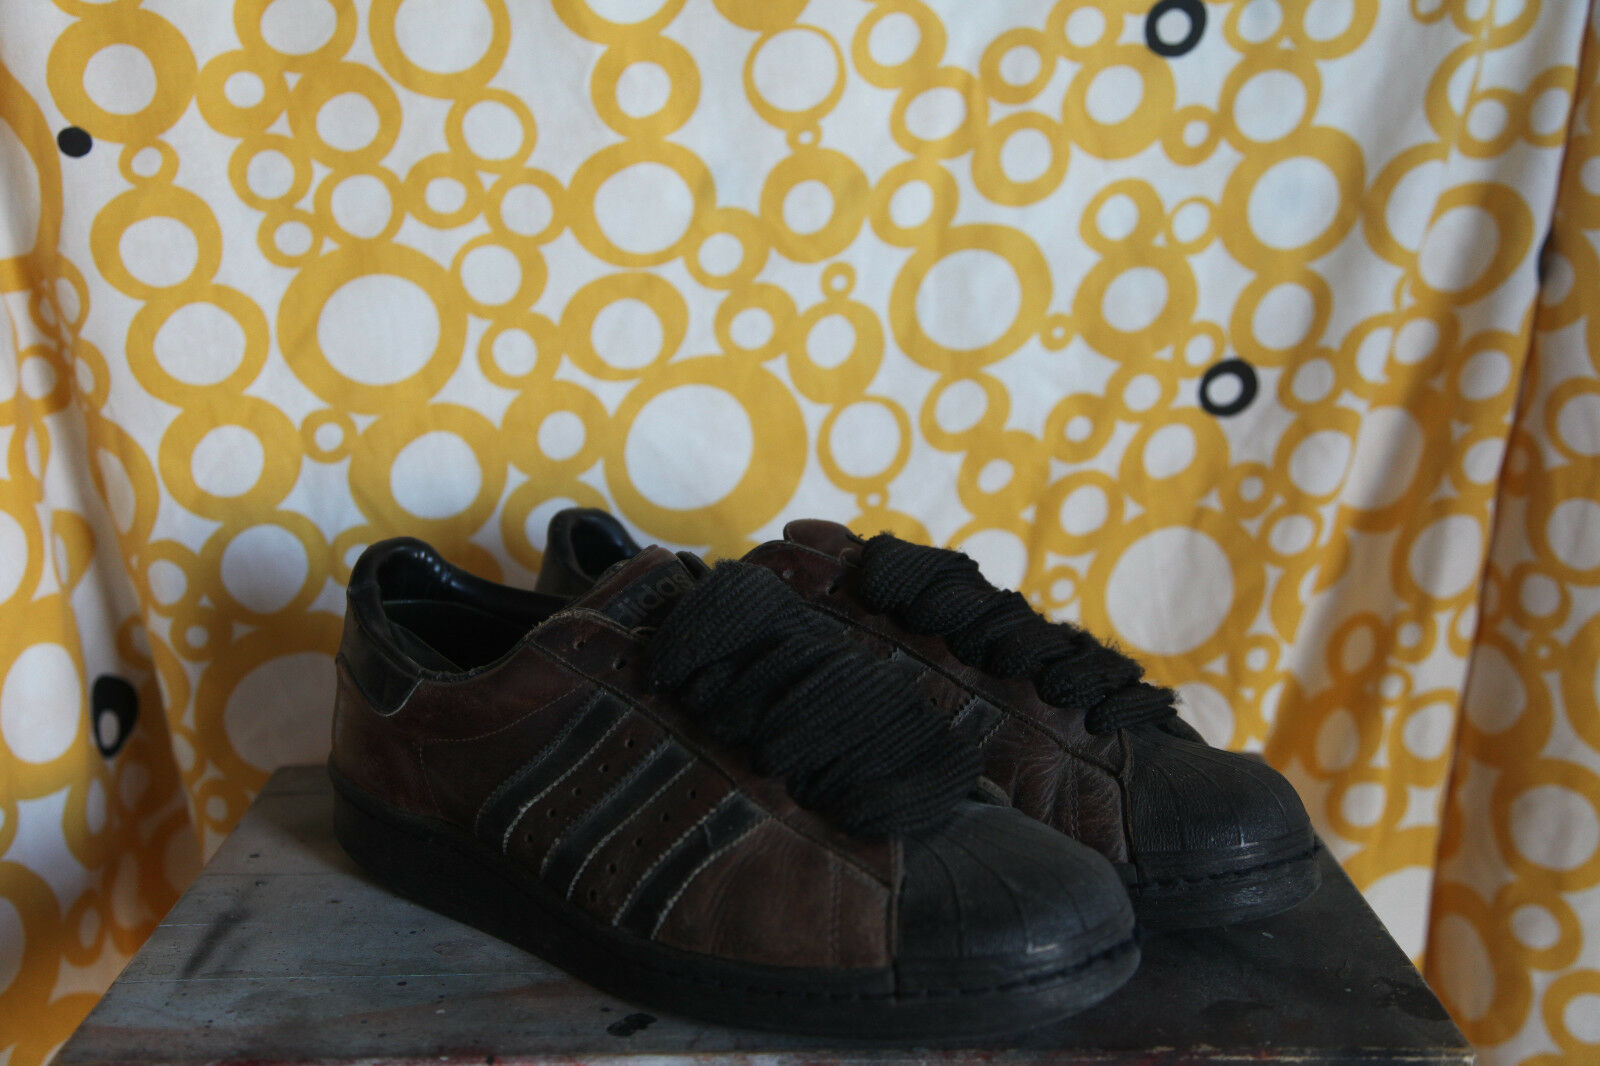 Adidas Superstar Black/Brown Sz US 9,5 early 90s